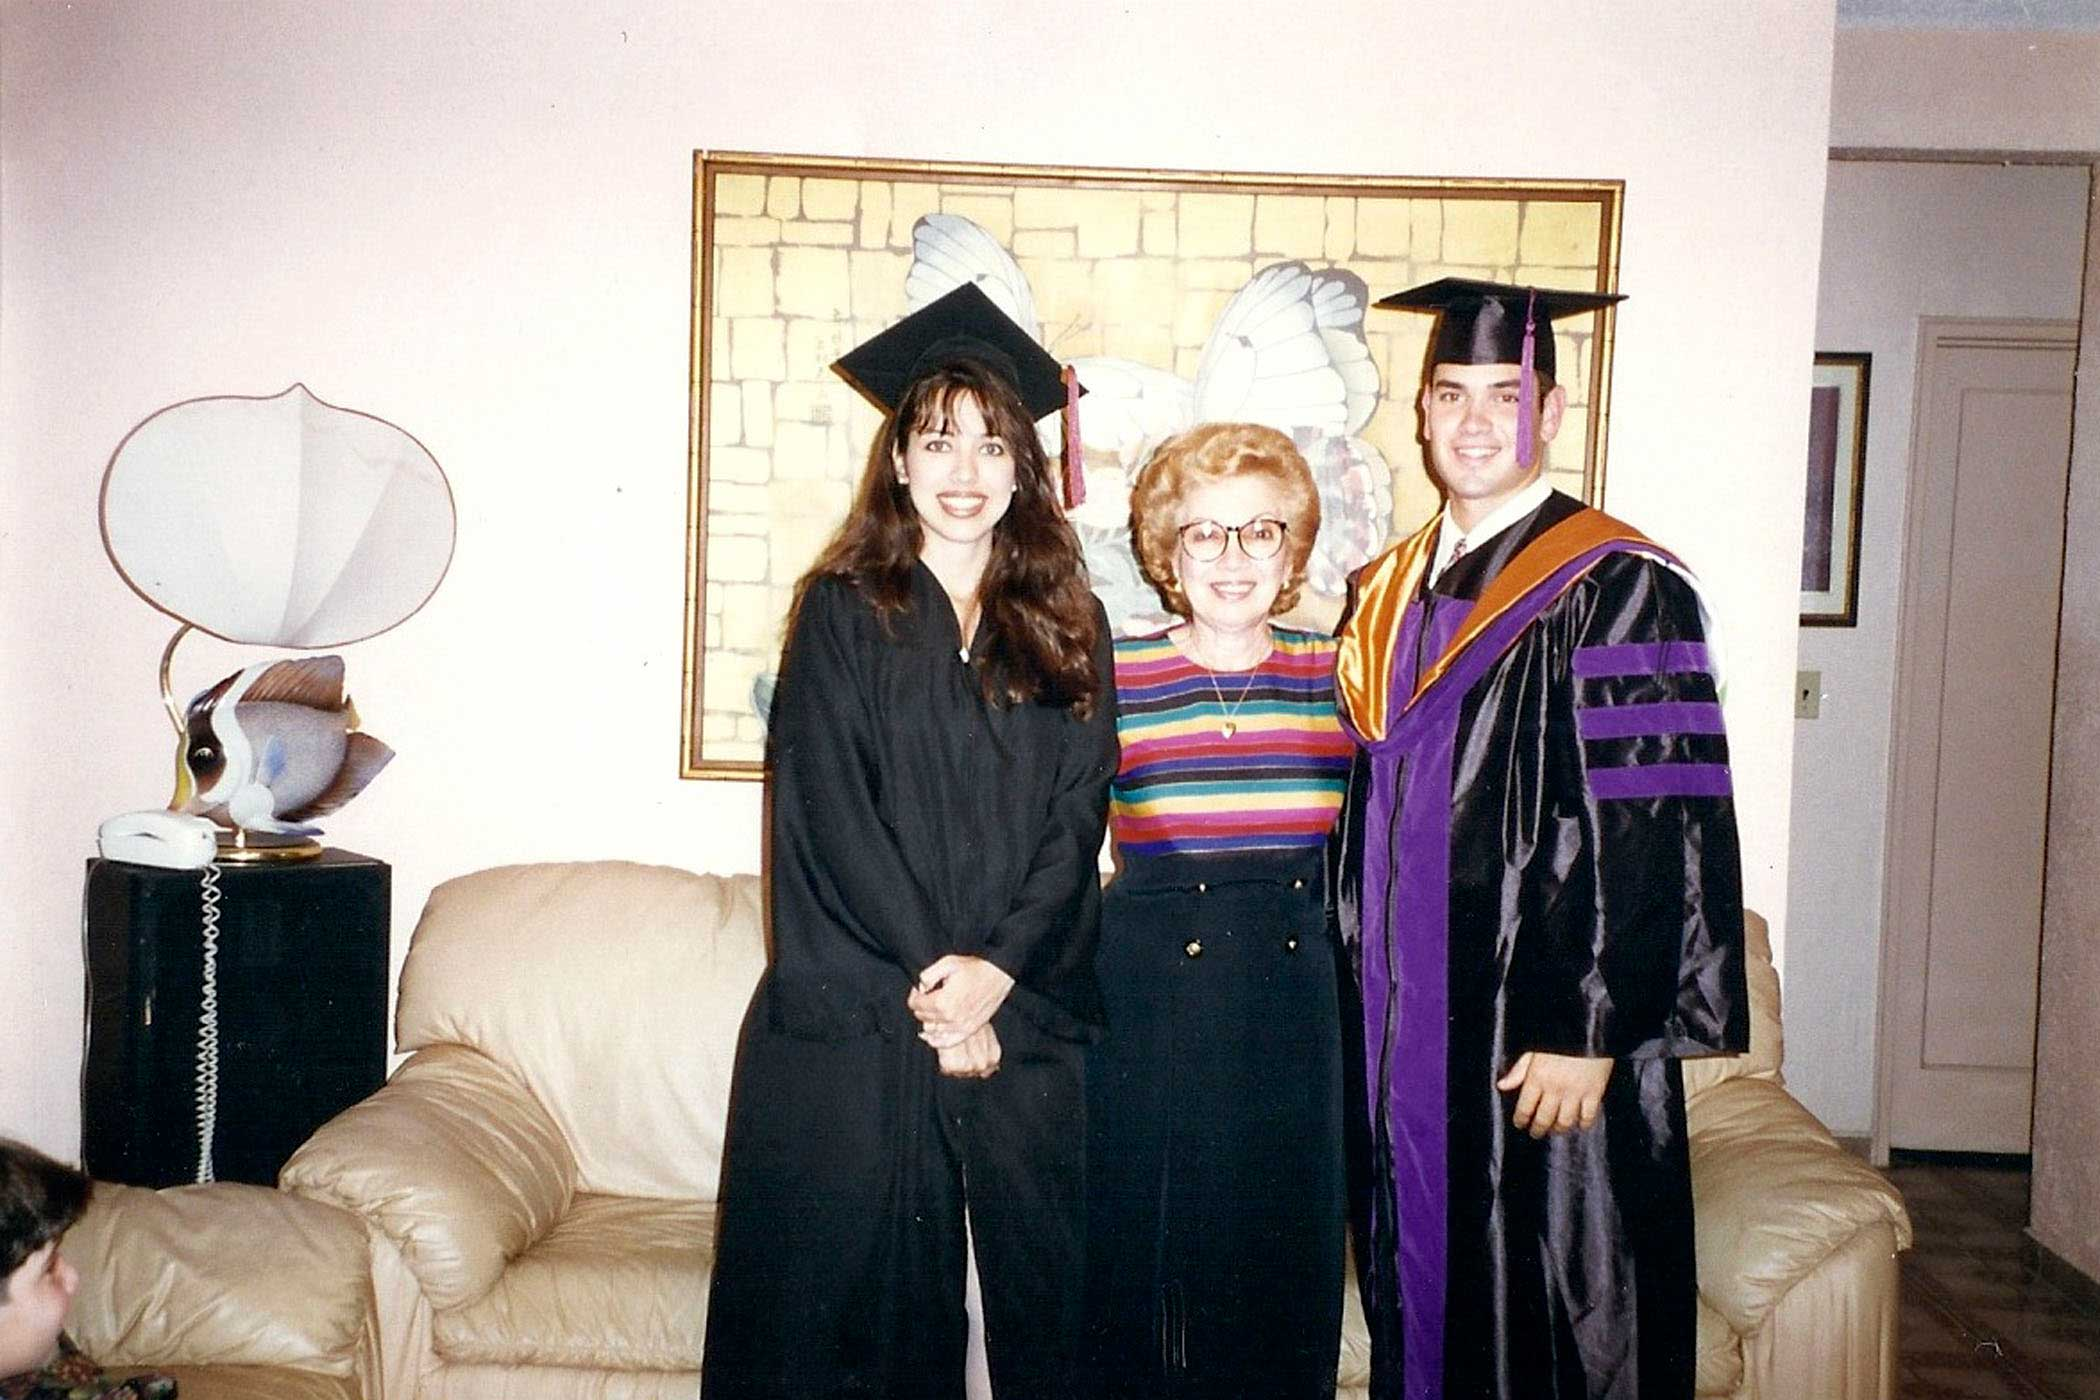 From right Marco Rubio with his mother and sister Veronica during his graduation from the University of Miami law school in 1996. Veronica graduated from Florida international university bachelor's degree.